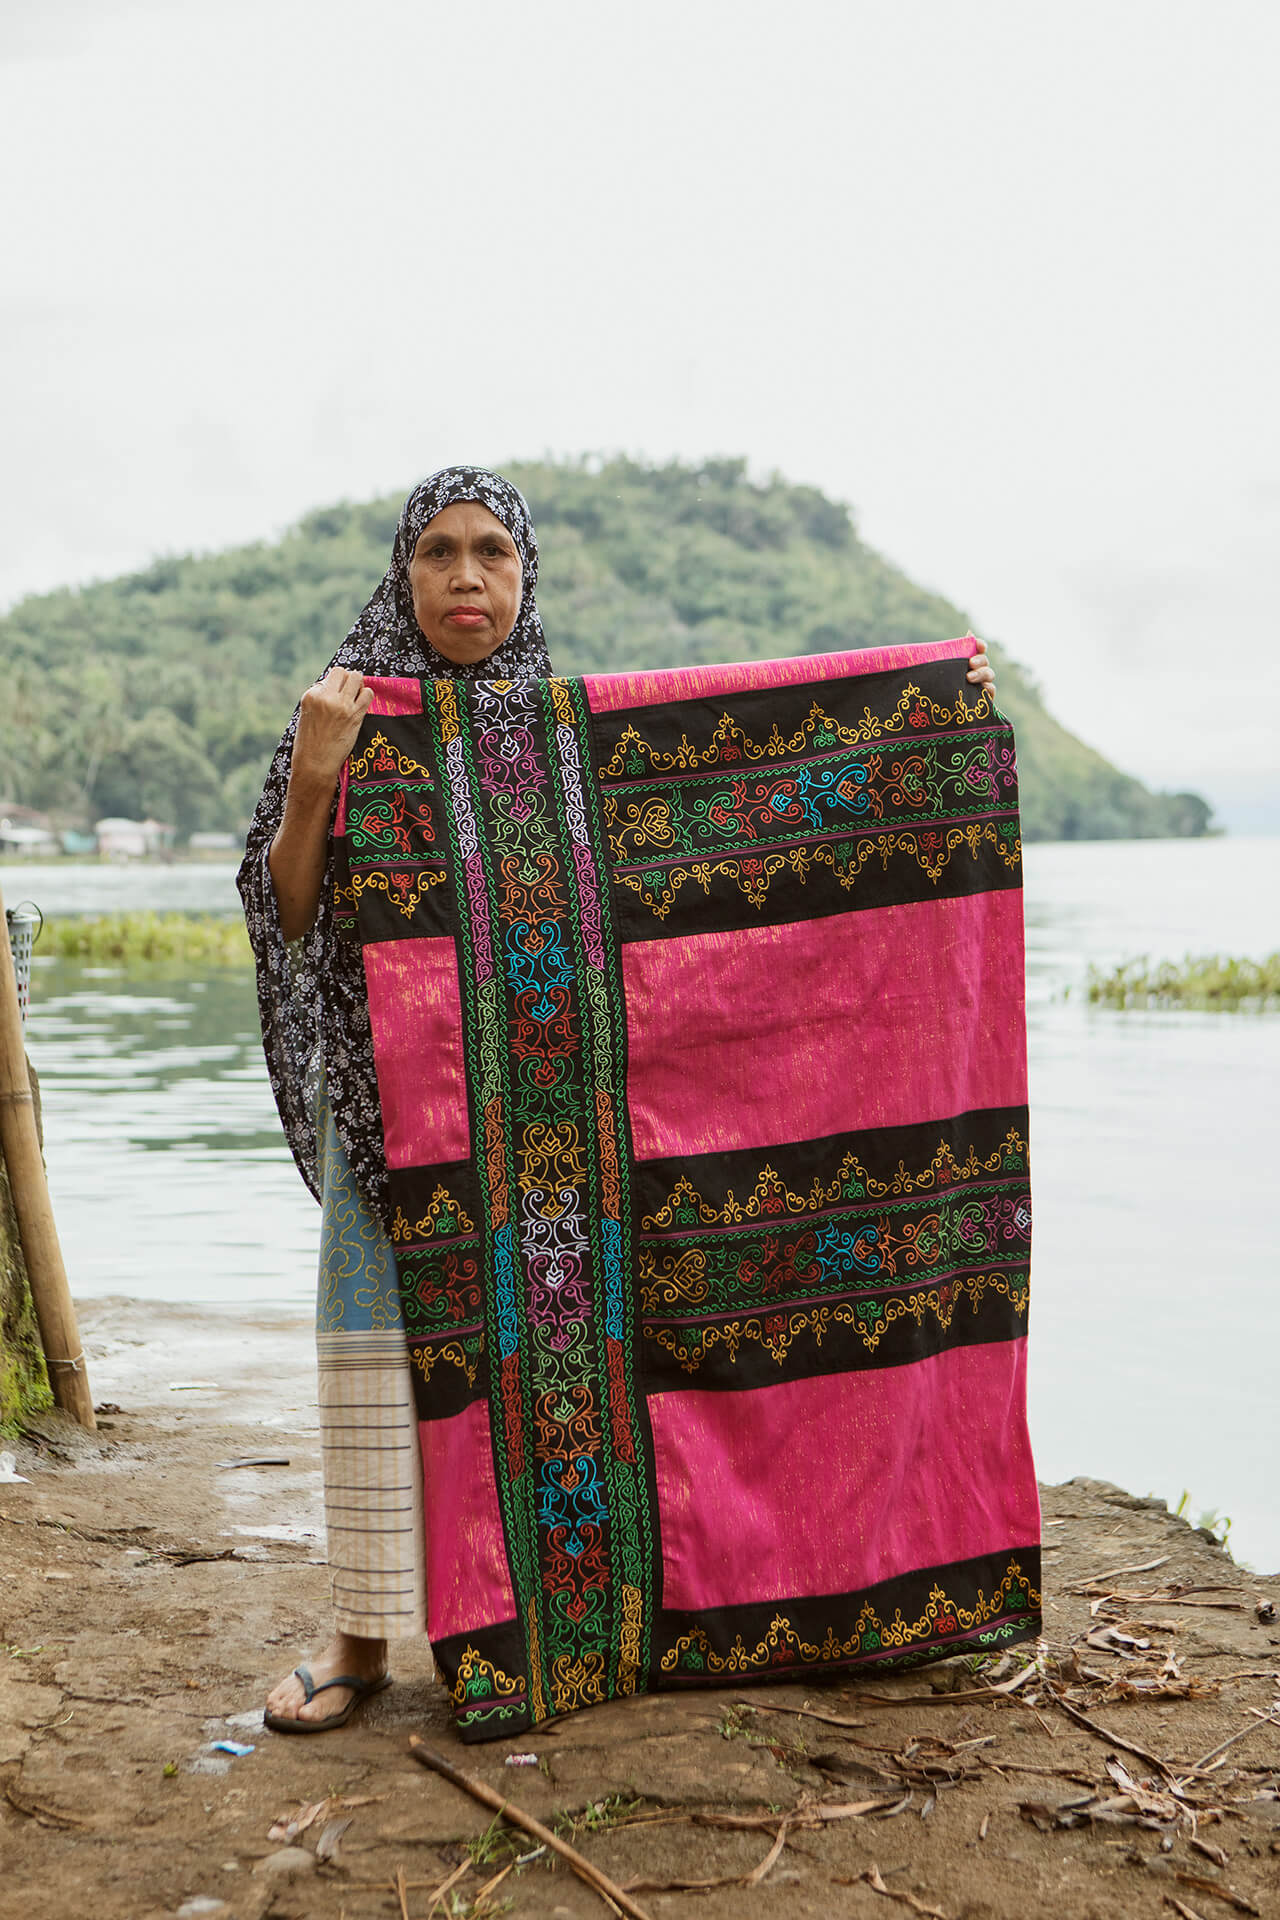 Maranao textile forming intricate okir patterns in panels of three